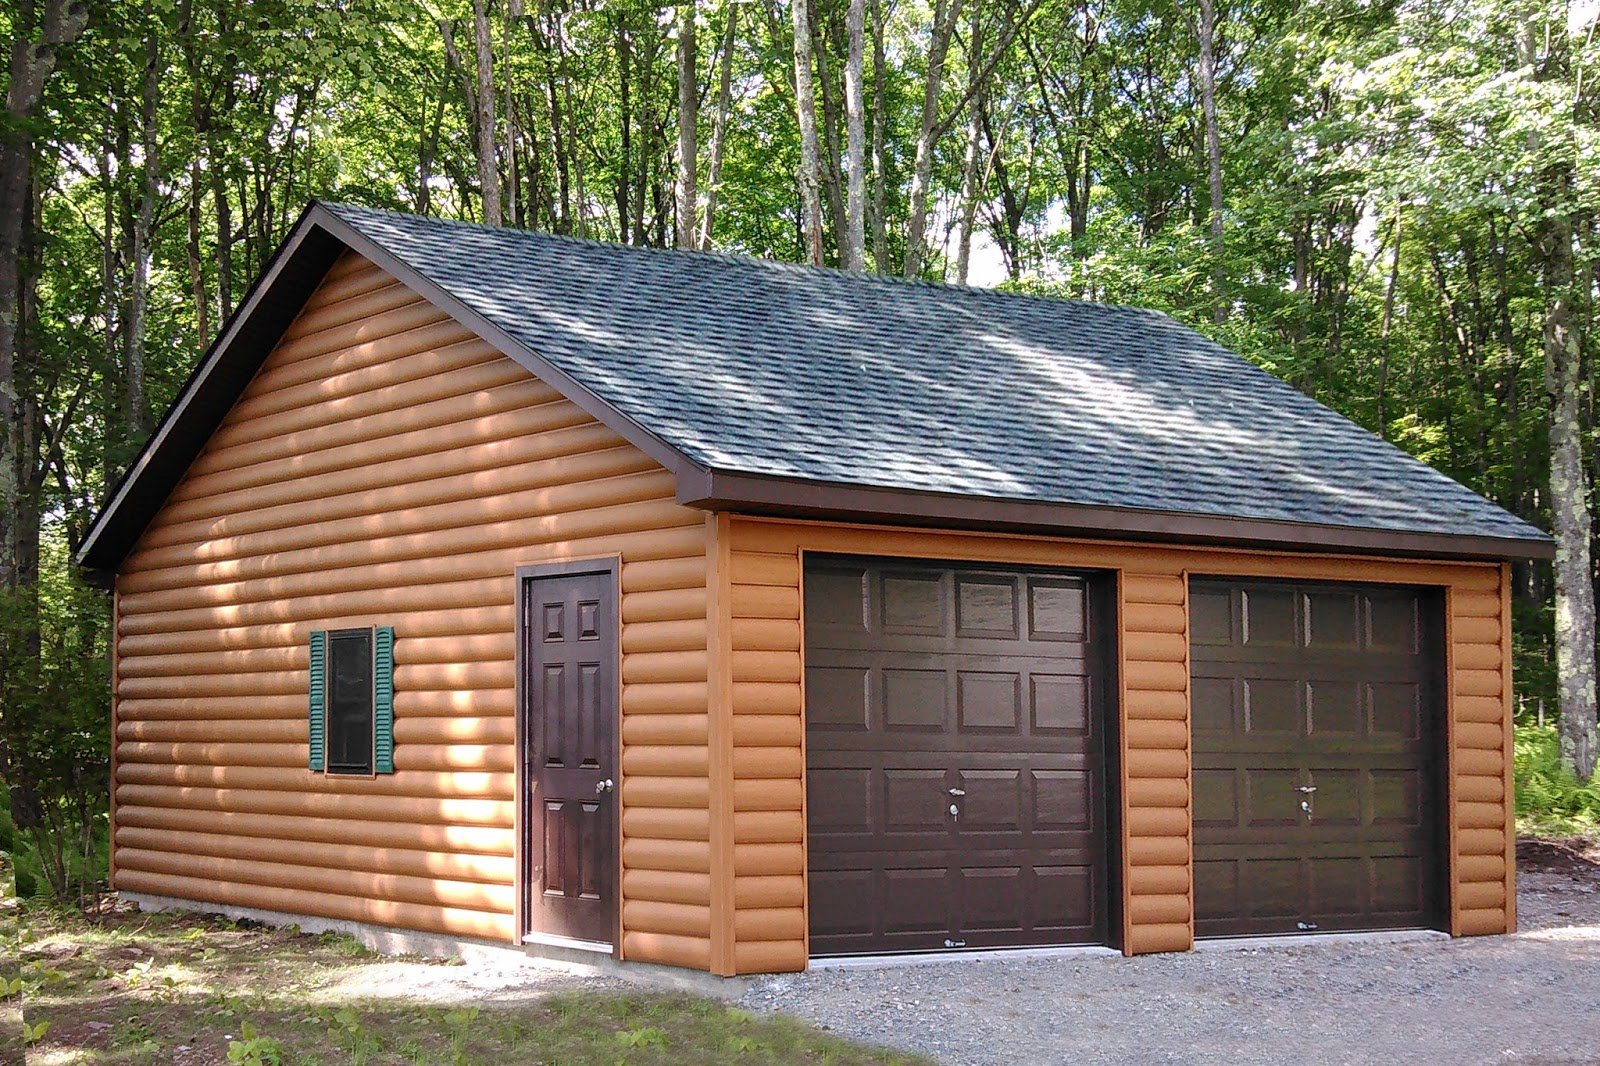 Prefab car garages for sale in pa nj ny ct de md va for Cost to build 2 car garage with loft